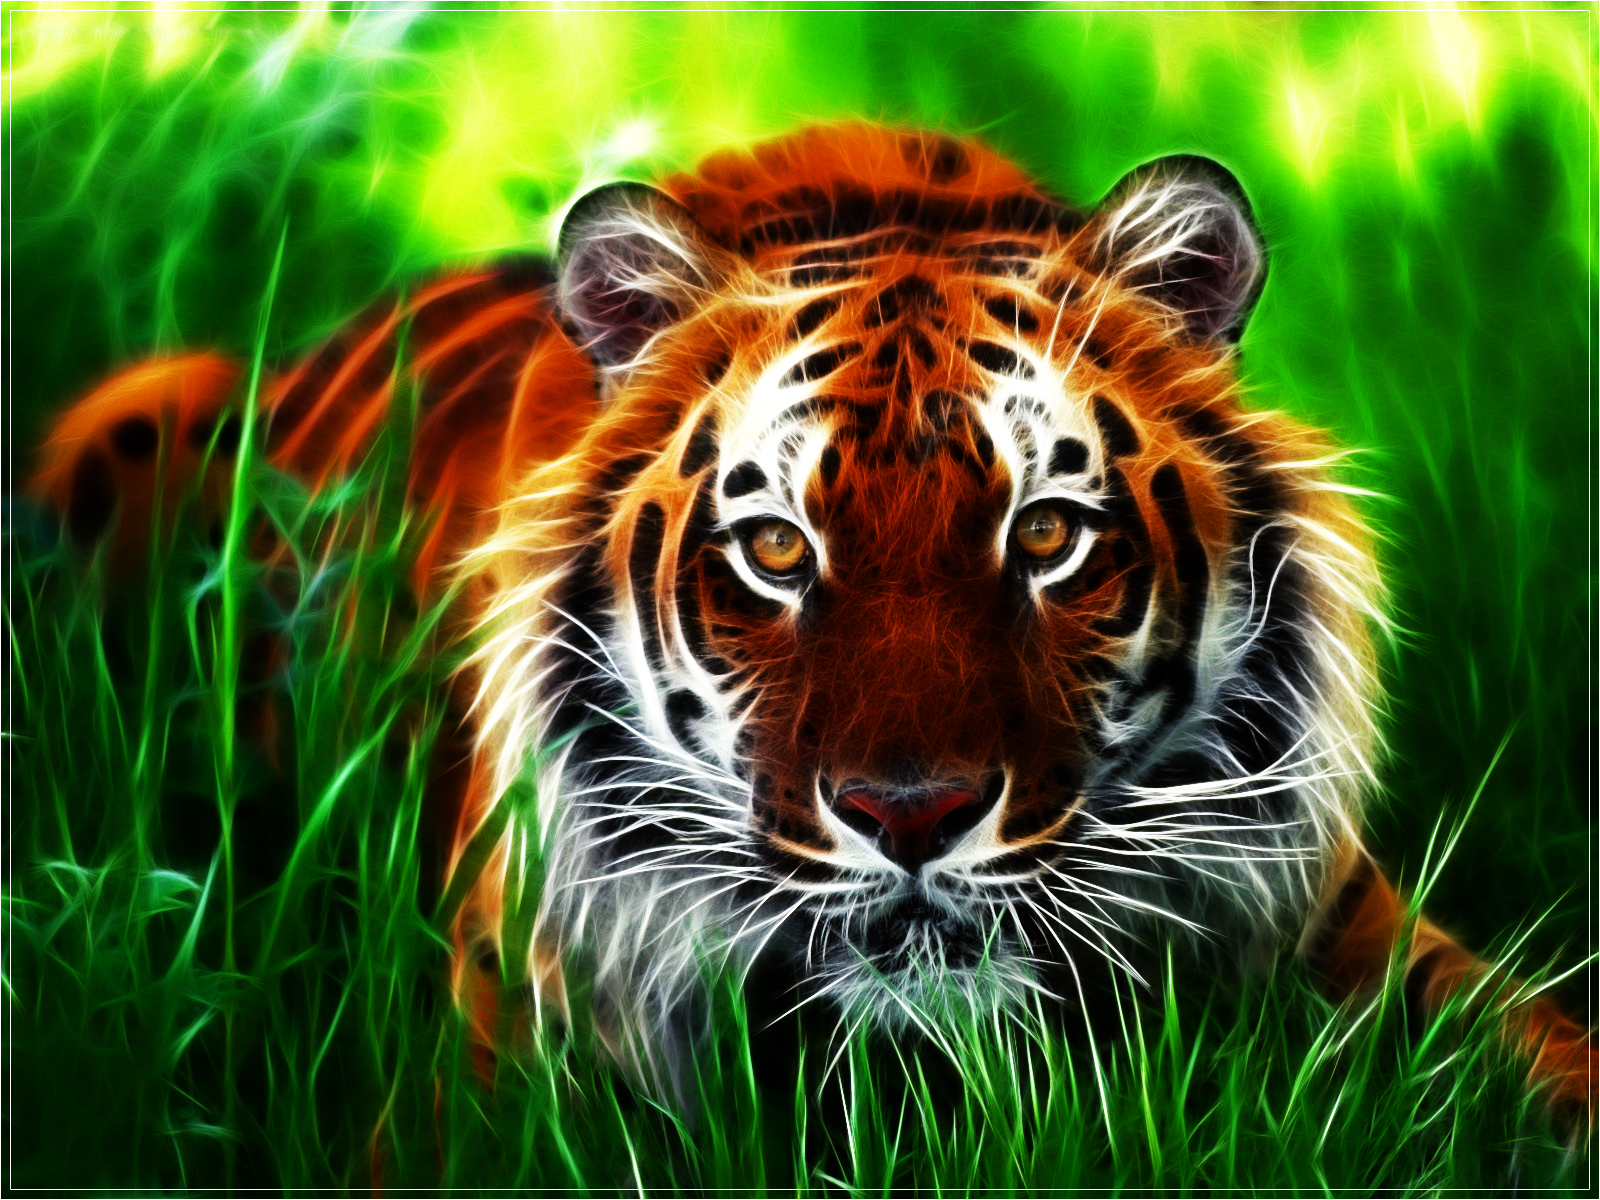 Get the best size of Tiger Wallpaper and Desktop tiger wallpapers here 1600x1200